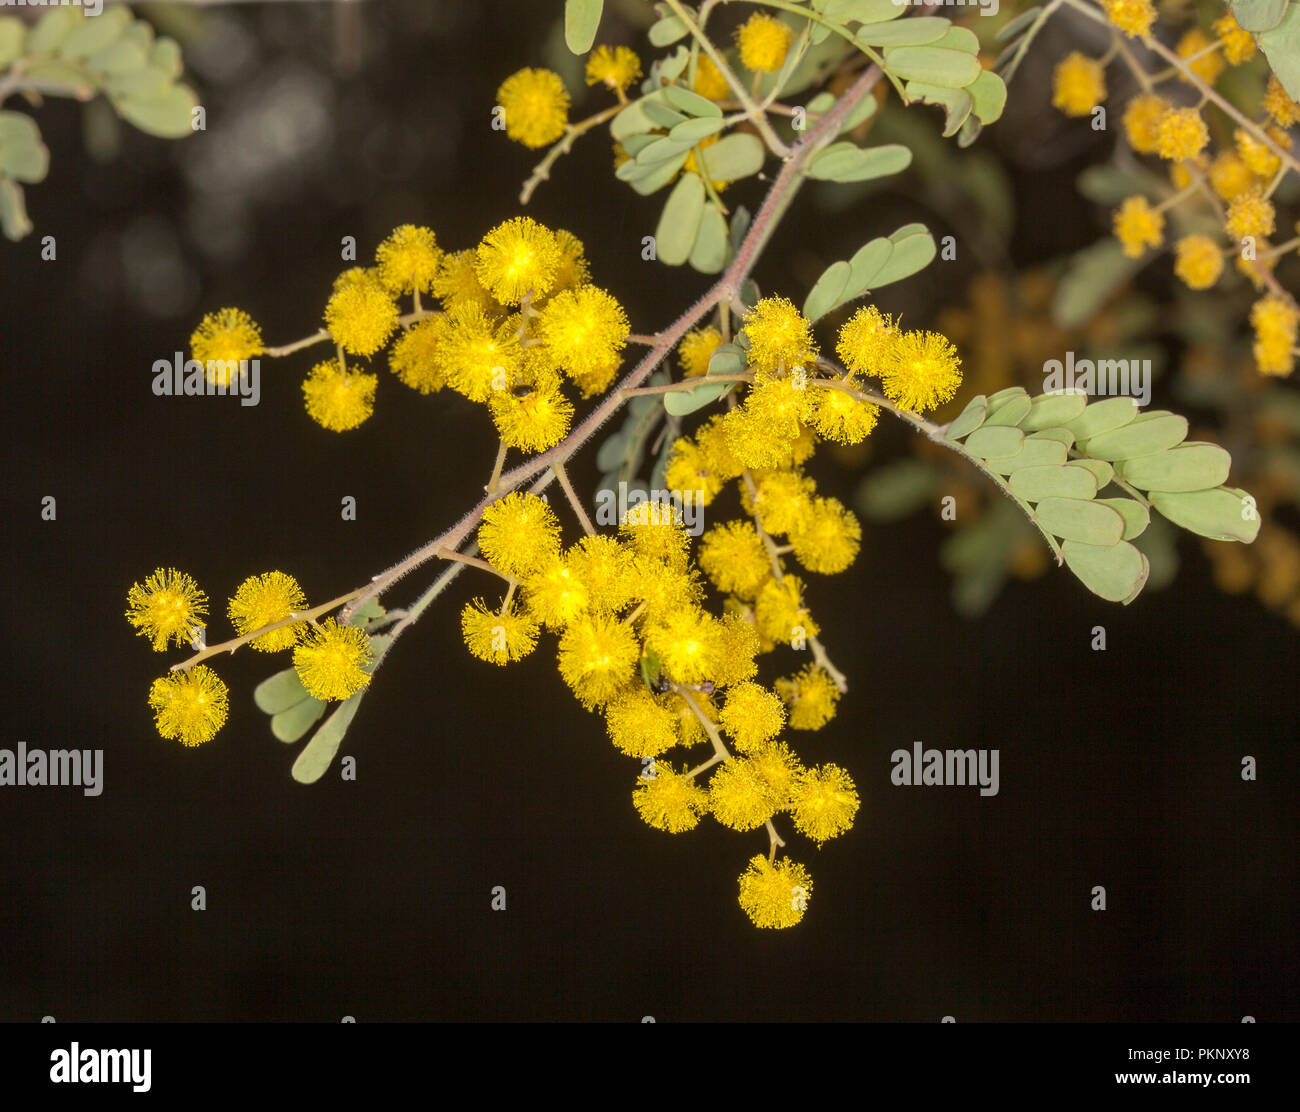 Australian wildflowers, cluster of golden yellow Acacia / wattle flowers and green leaves on dark background - Stock Image